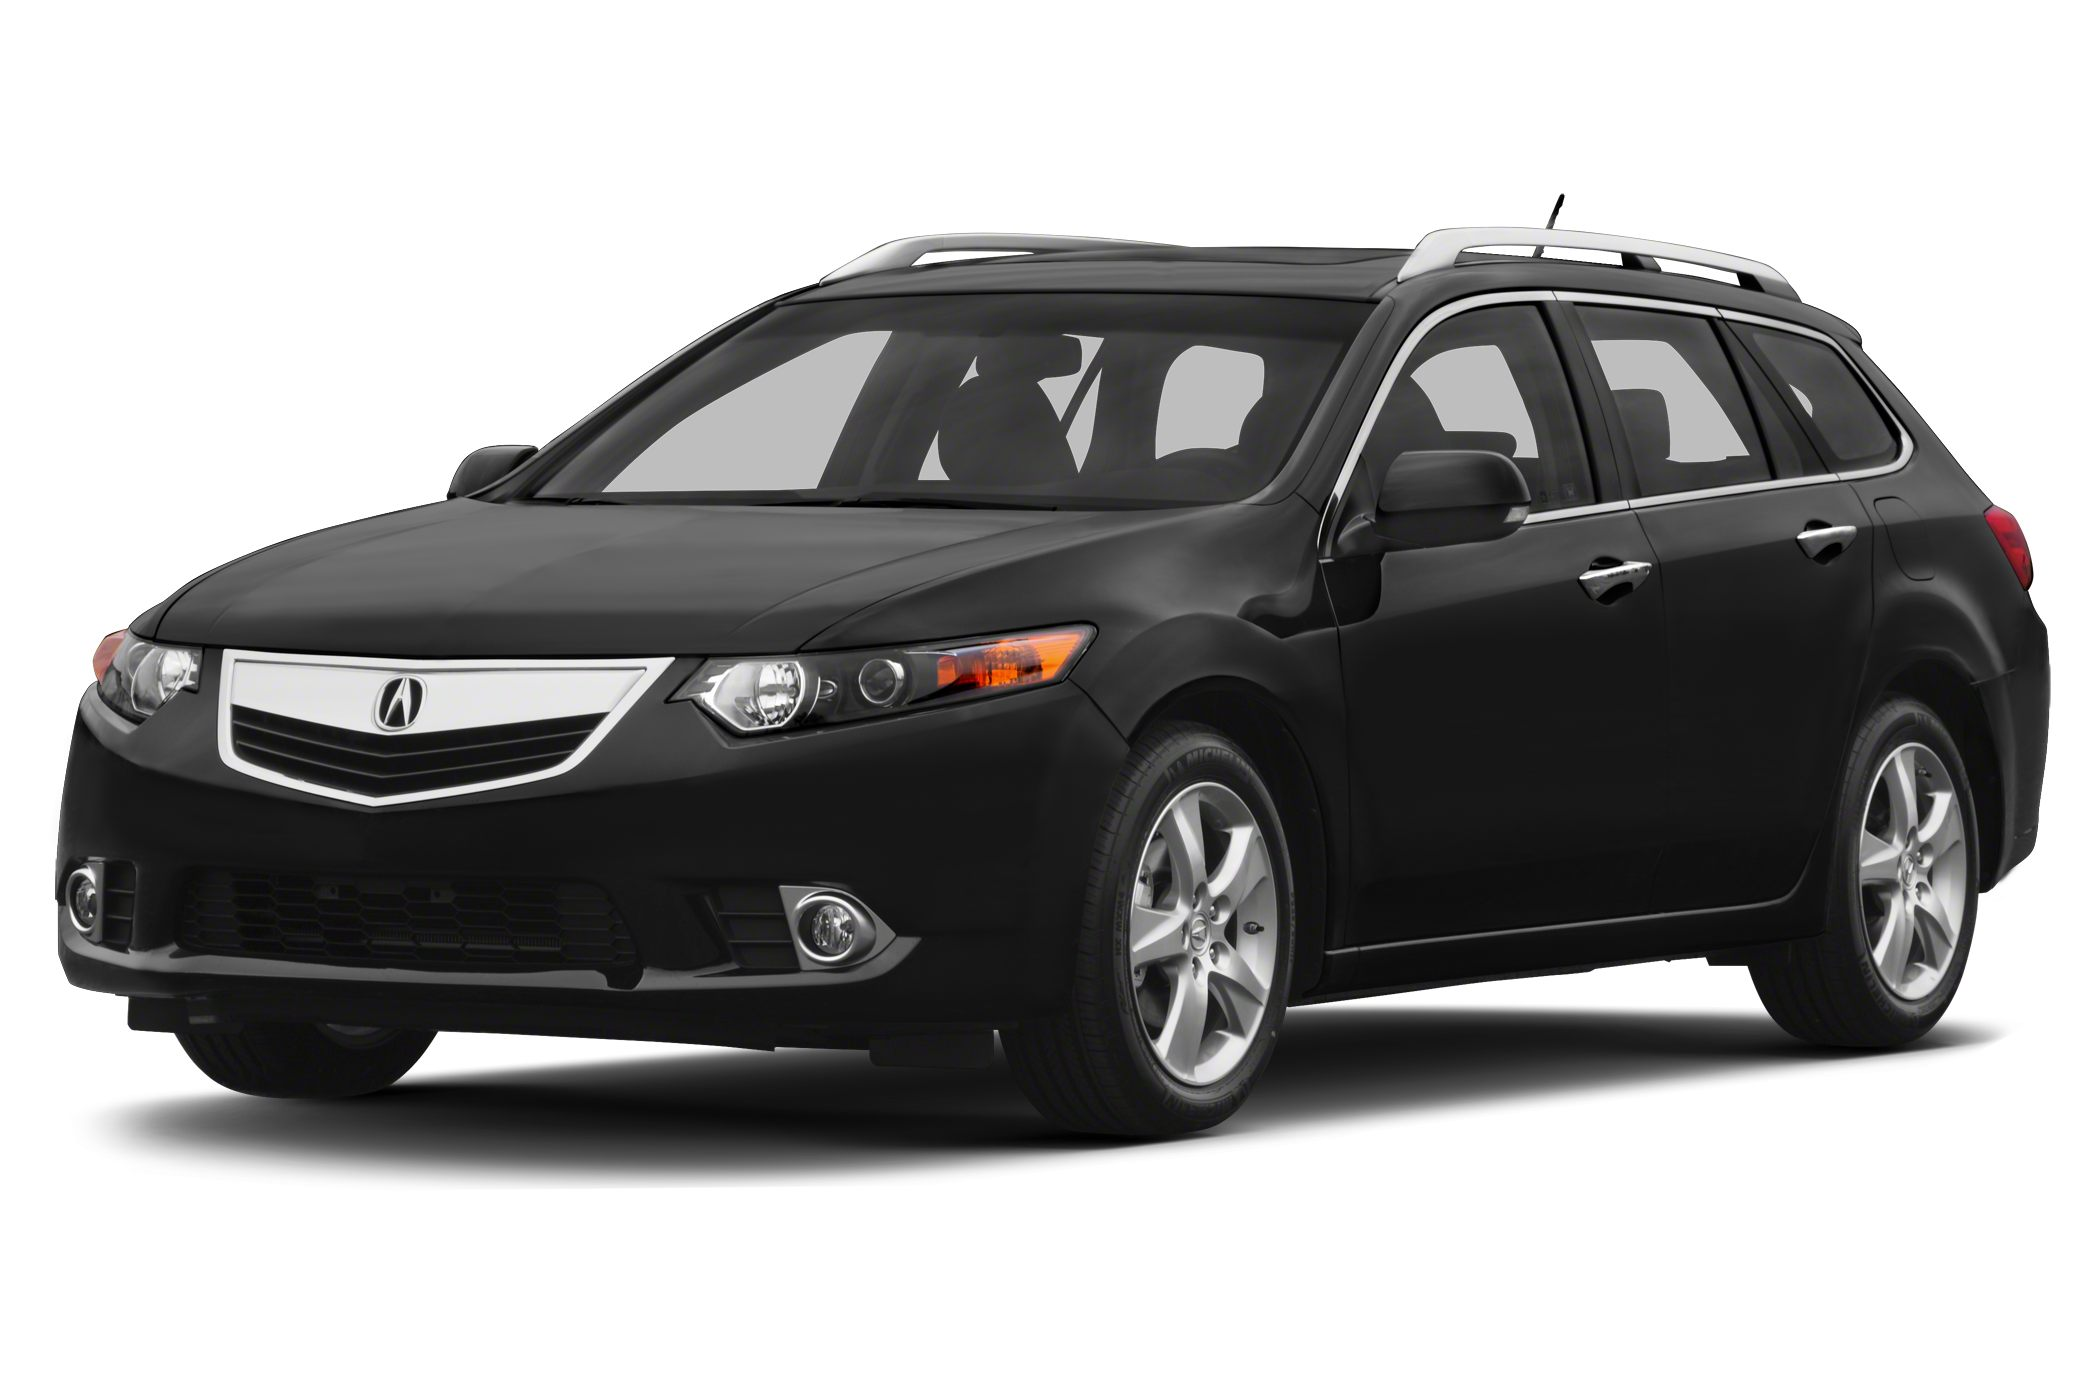 2013 Acura TSX 2 4 4dr Sport Wagon Pricing and Options